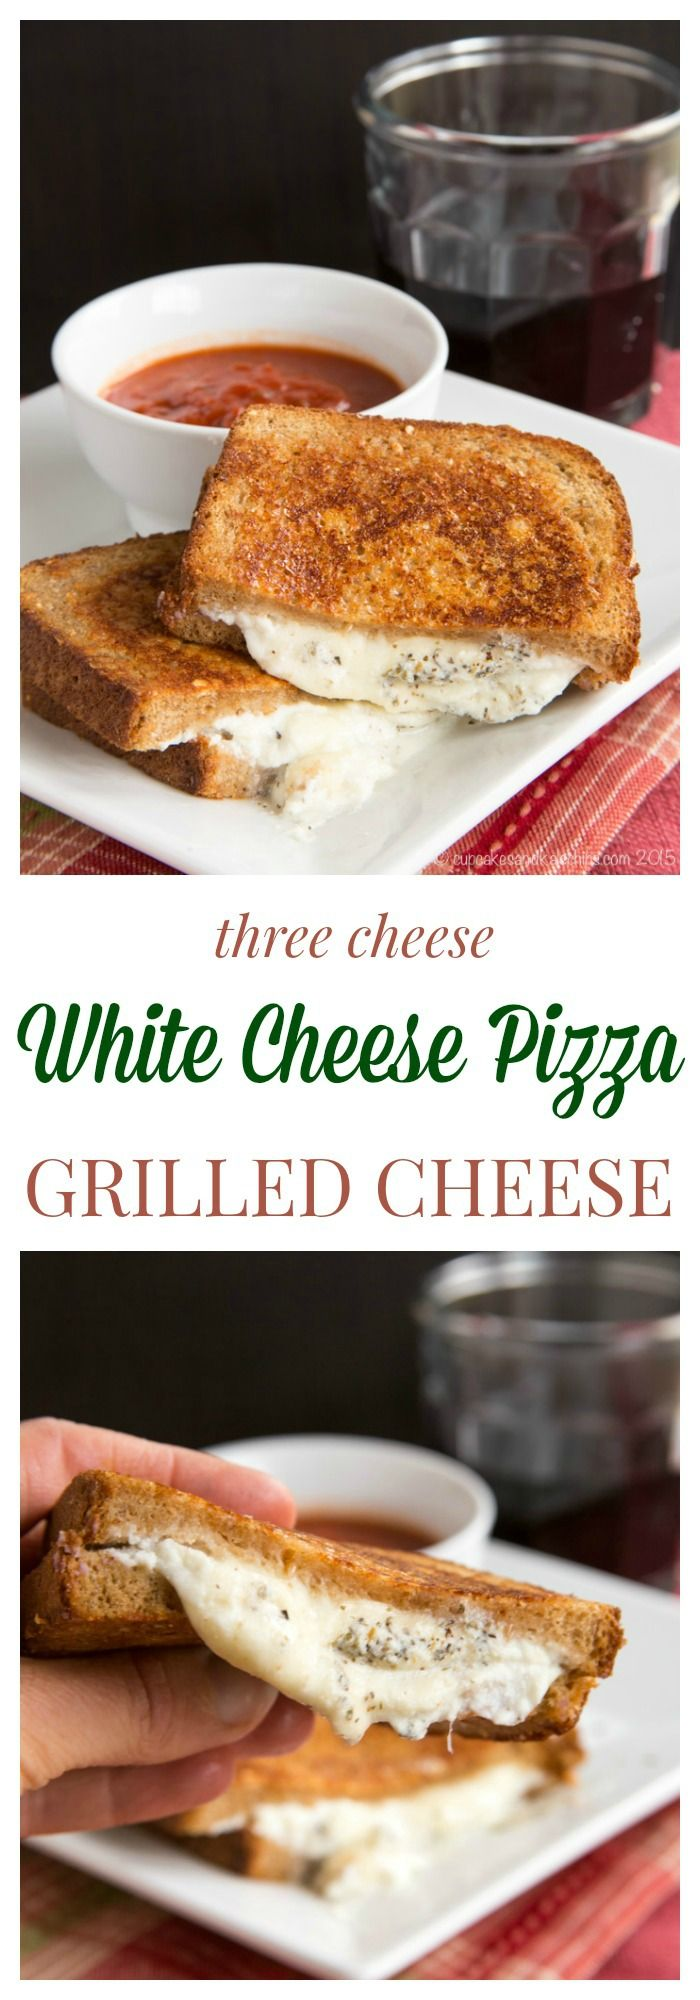 Three Cheese White Cheese Pizza Grilled Cheese combines the cheesy goodness of white pizza and the classic comfort food sandwich in one. No need to order delivery or make pizza crust! | cupcakesandkalechips.com | vegetarian